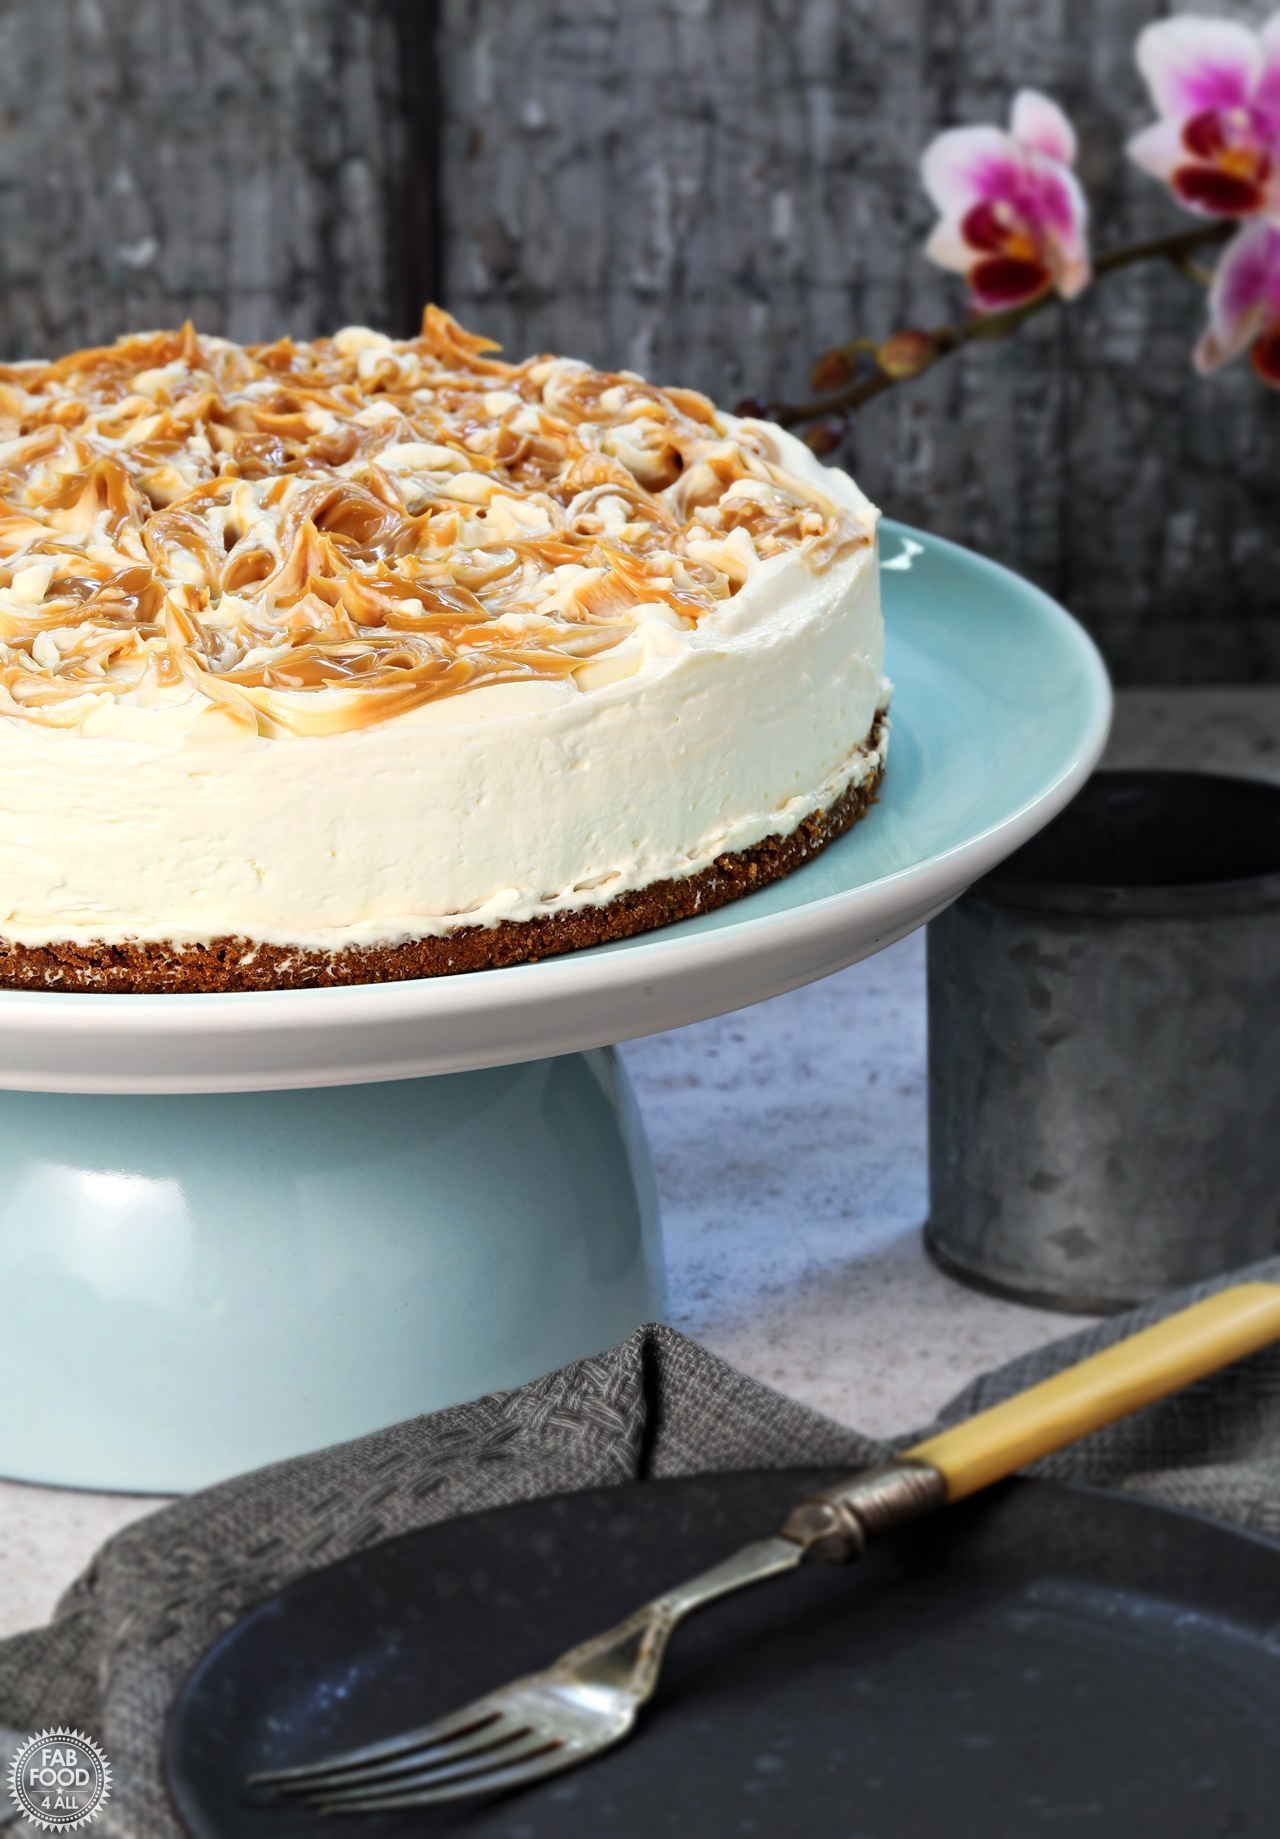 Salted Caramel Cheesecake no bake on a blue pedestal with plate and cup.